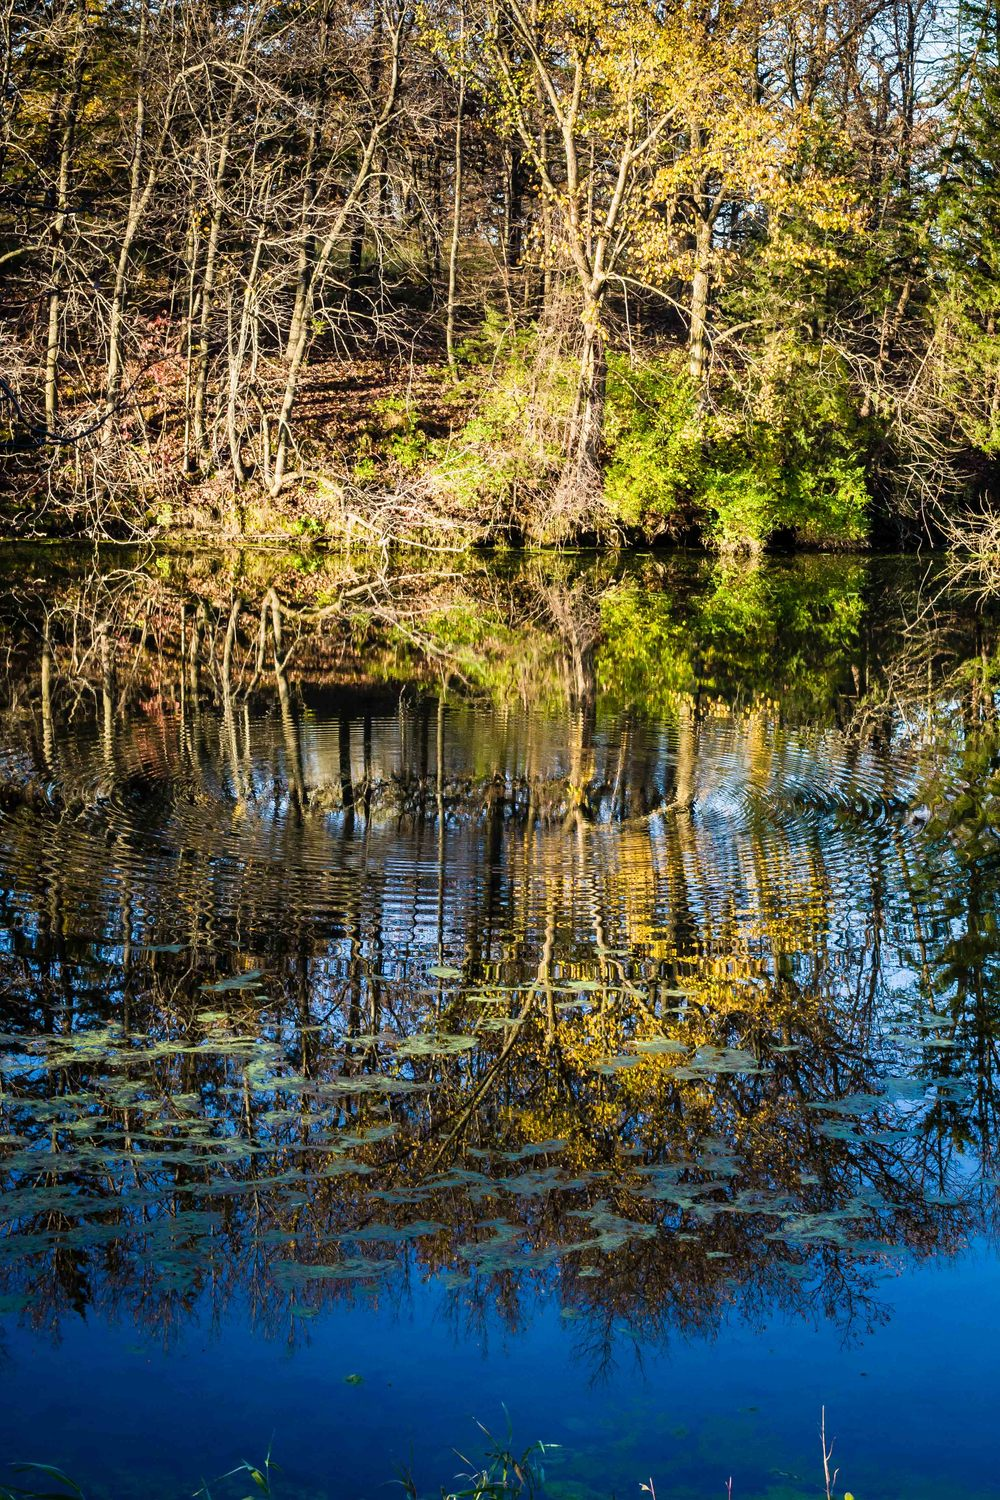 Reflections, McFarland Park, Story County, Iowa